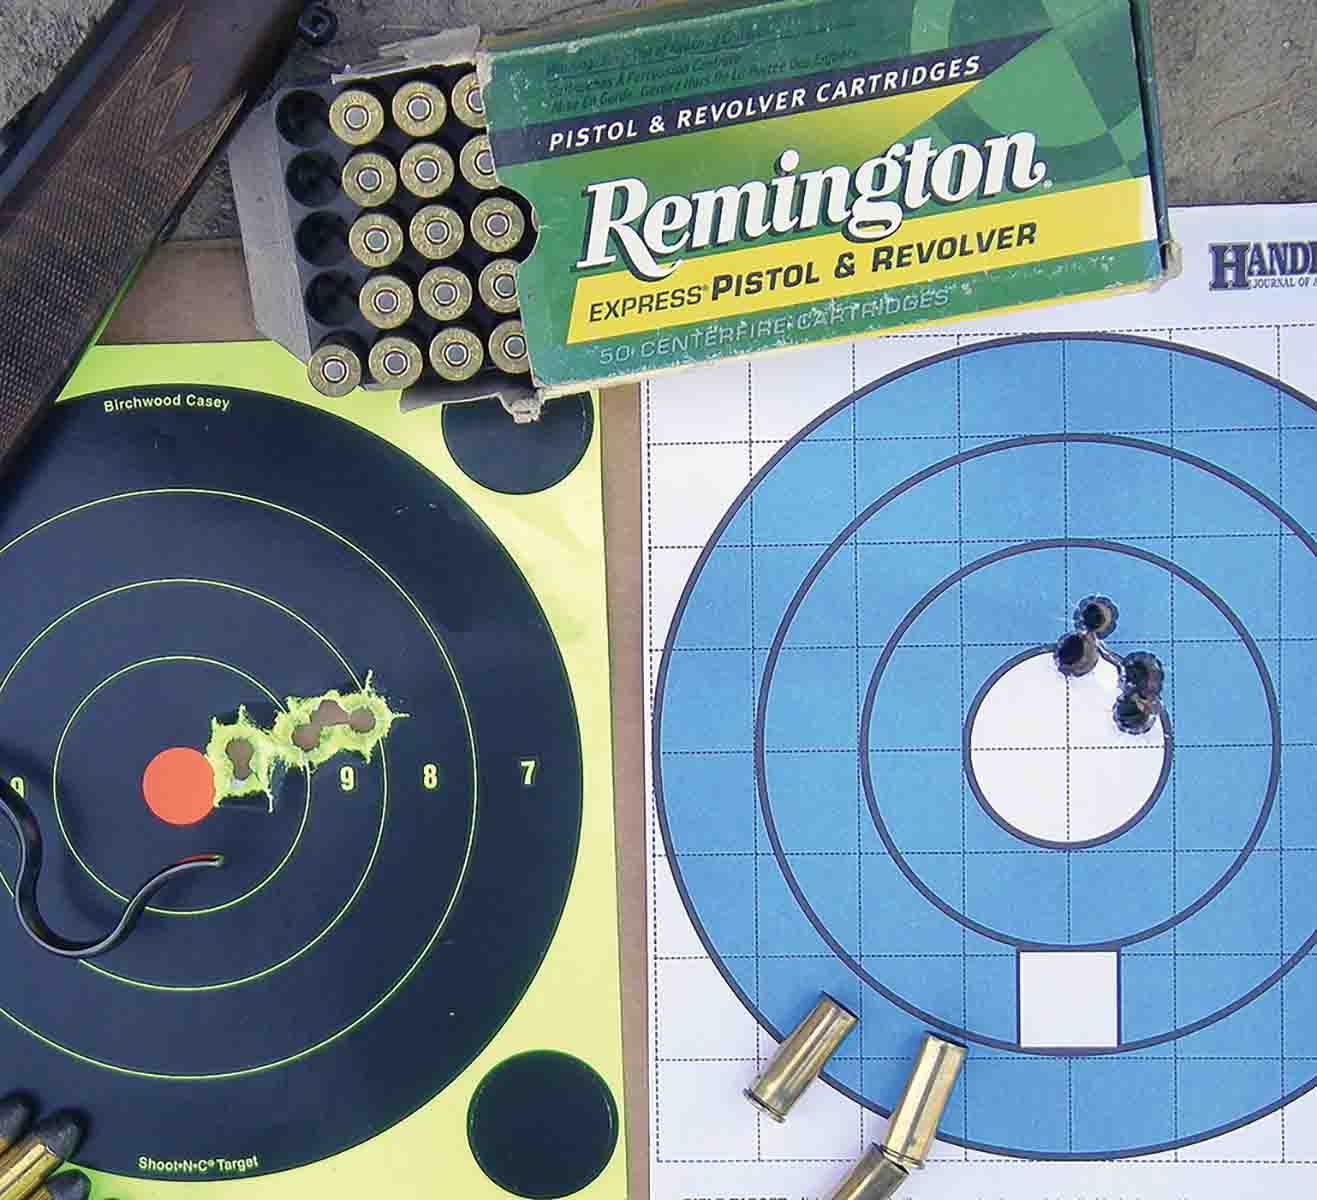 Factory loads from Remington and handloads were tried in the Model 1885 .45 Colt, which proved accurate at 50 yards.